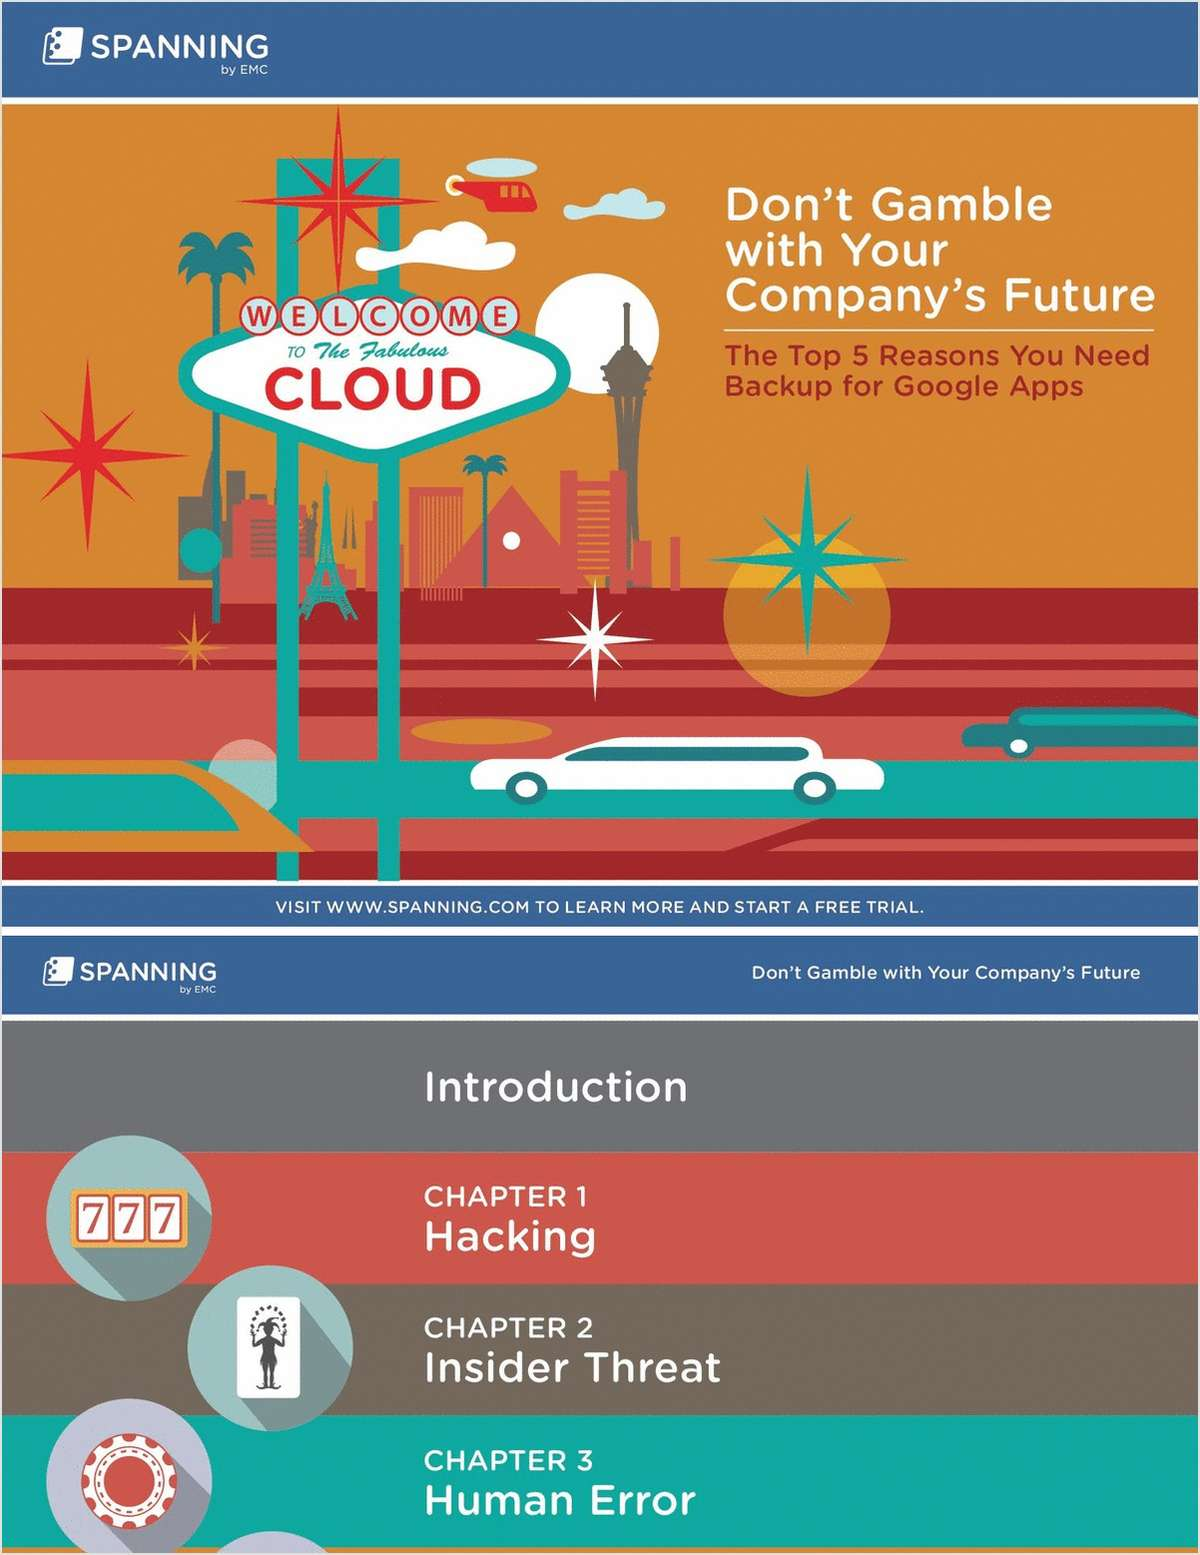 Don't Gamble with Your Company's Future: Protect Your Google Apps